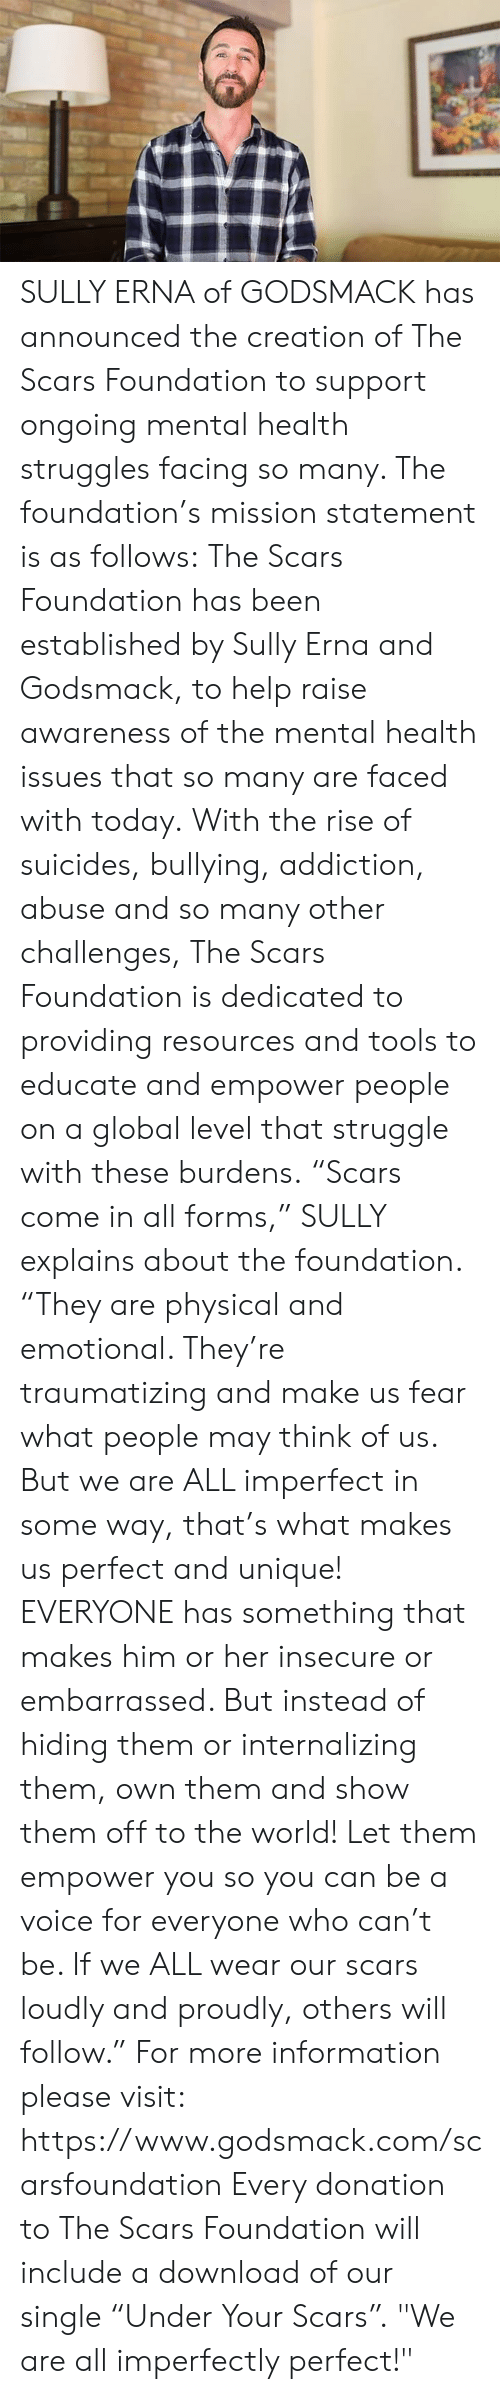 """Memes, Struggle, and Help: SULLY ERNA of GODSMACK has announced the creation of The Scars Foundation to support ongoing mental health struggles facing so many.  The foundation's mission statement is as follows:  The Scars Foundation has been established by Sully Erna and Godsmack, to help raise awareness of the mental health issues that so many are faced with today.  With the rise of suicides, bullying, addiction, abuse and so many other challenges, The Scars Foundation is dedicated to providing resources and tools to educate and empower people on a global level that struggle with these burdens.  """"Scars come in all forms,"""" SULLY explains about the foundation.  """"They are physical and emotional. They're traumatizing and make us fear what people may think of us. But we are ALL imperfect in some way, that's what makes us perfect and unique!  EVERYONE has something that makes him or her insecure or embarrassed. But instead of hiding them or internalizing them, own them and show them off to the world!  Let them empower you so you can be a voice for everyone who can't be. If we ALL wear our scars loudly and proudly, others will follow.""""  For more information please visit: https://www.godsmack.com/scarsfoundation  Every donation to The Scars Foundation will include a download of our single """"Under Your Scars"""".  """"We are all imperfectly perfect!"""""""